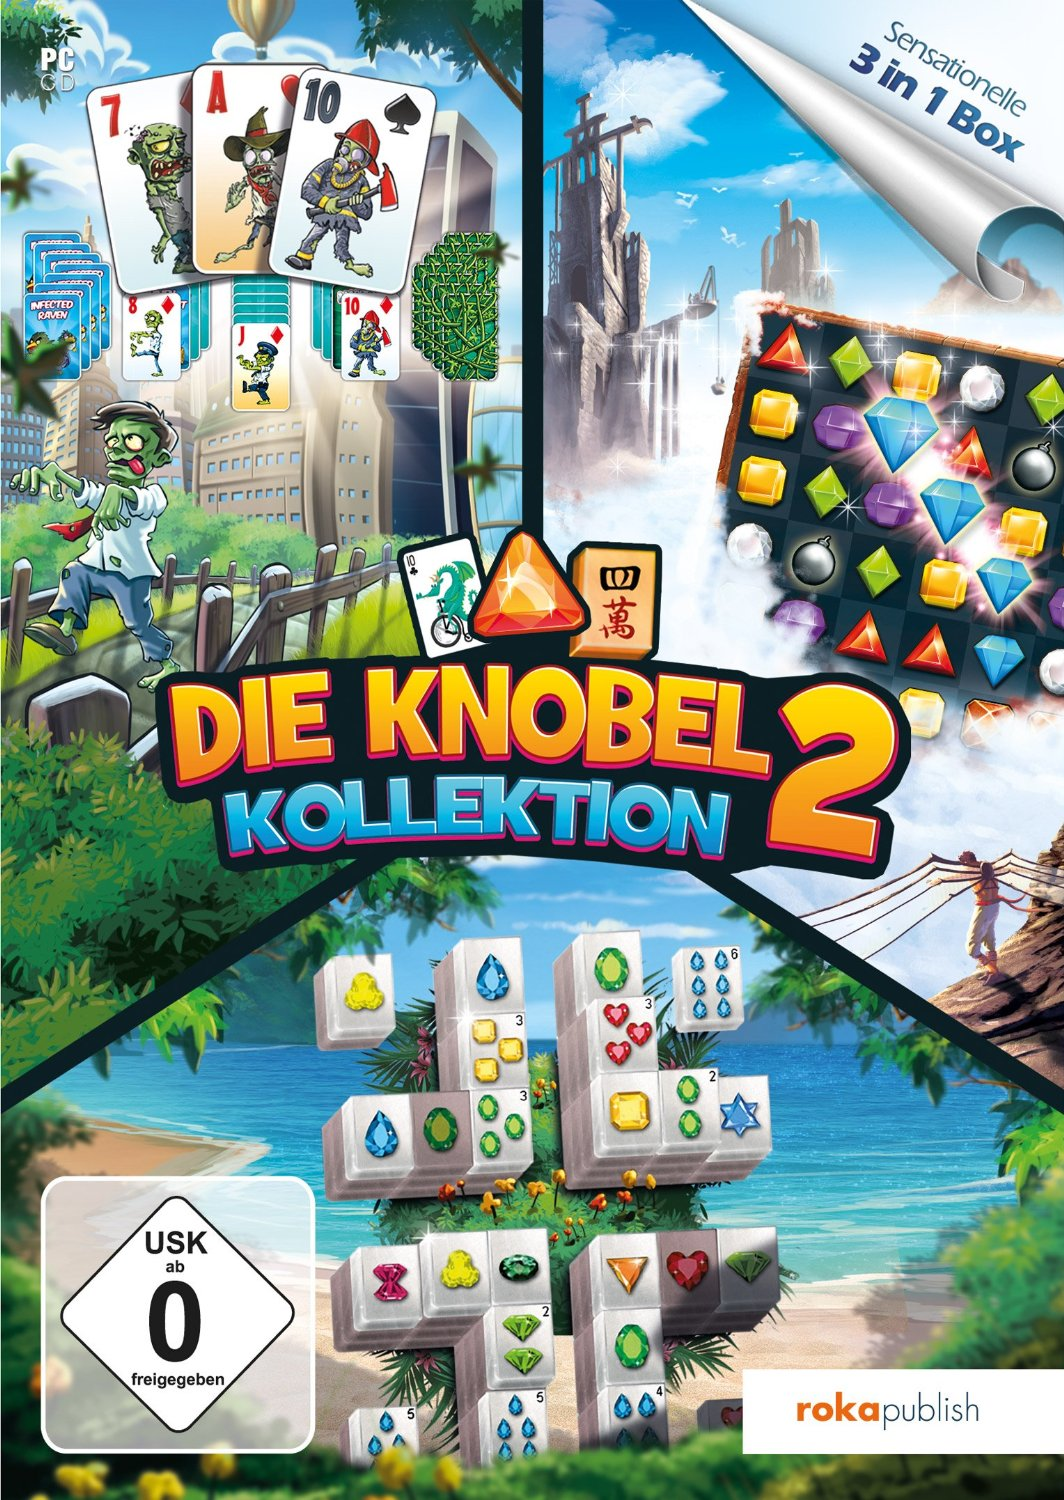 Die Knobel Kollektion 2